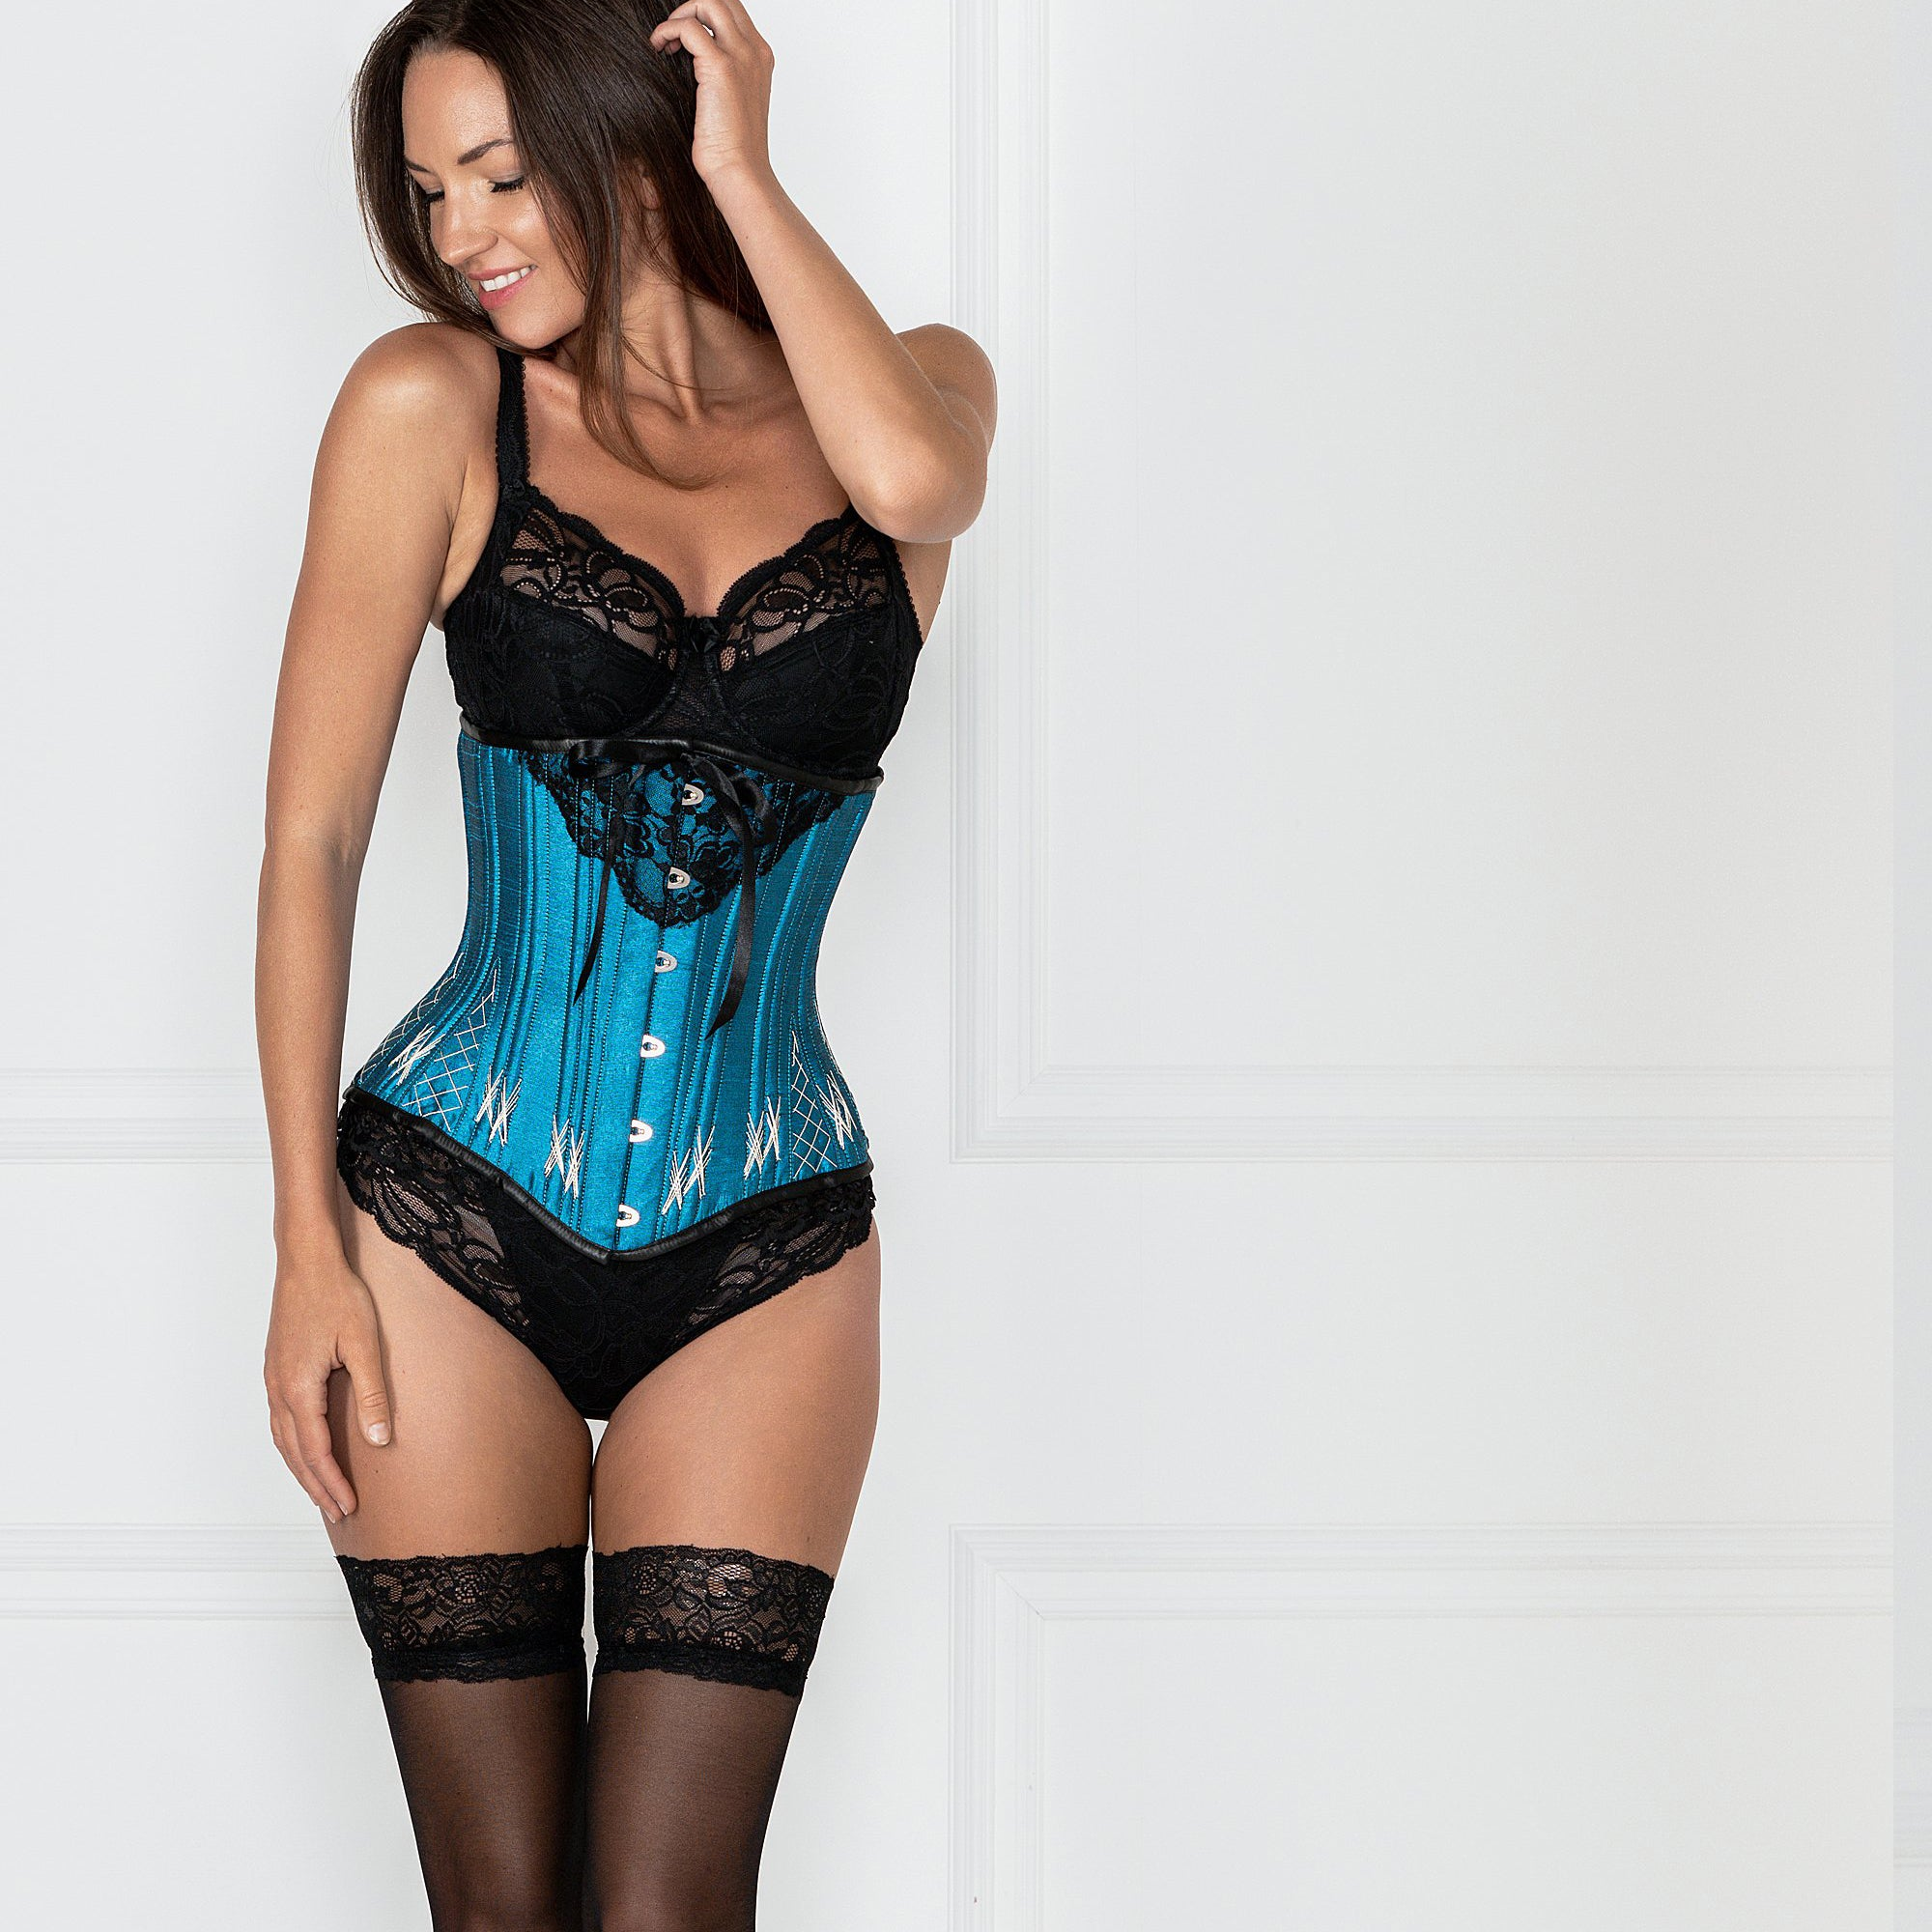 How to Season Your Corset